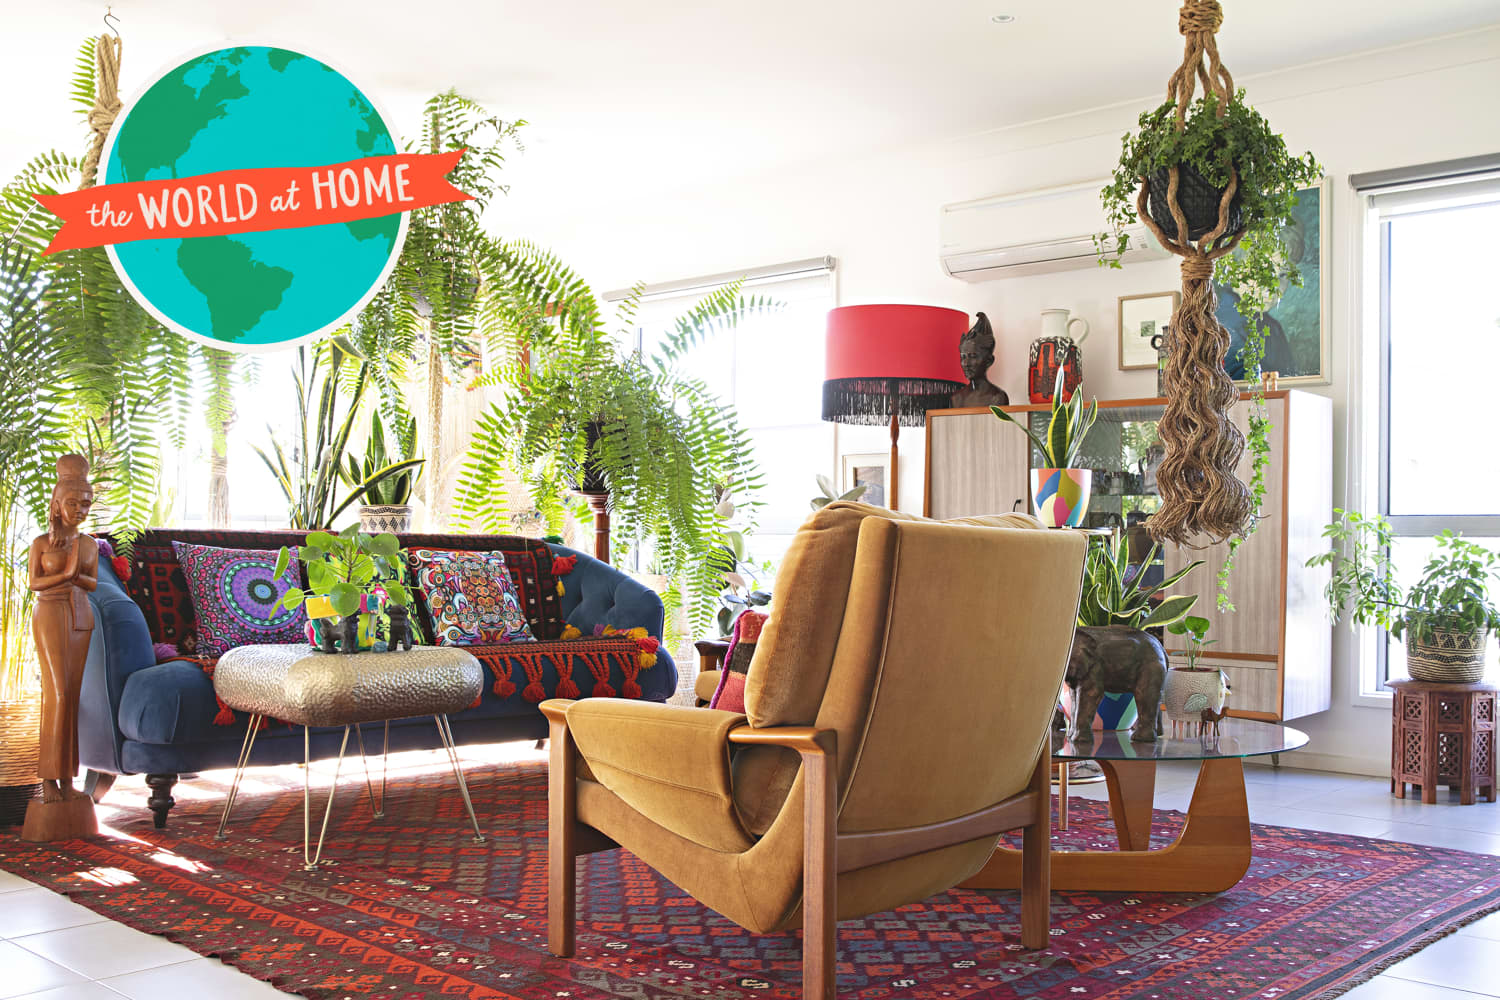 This Plant-Filled, Colorful Australian Home Is the Very Definition of Bohemian Maximalist